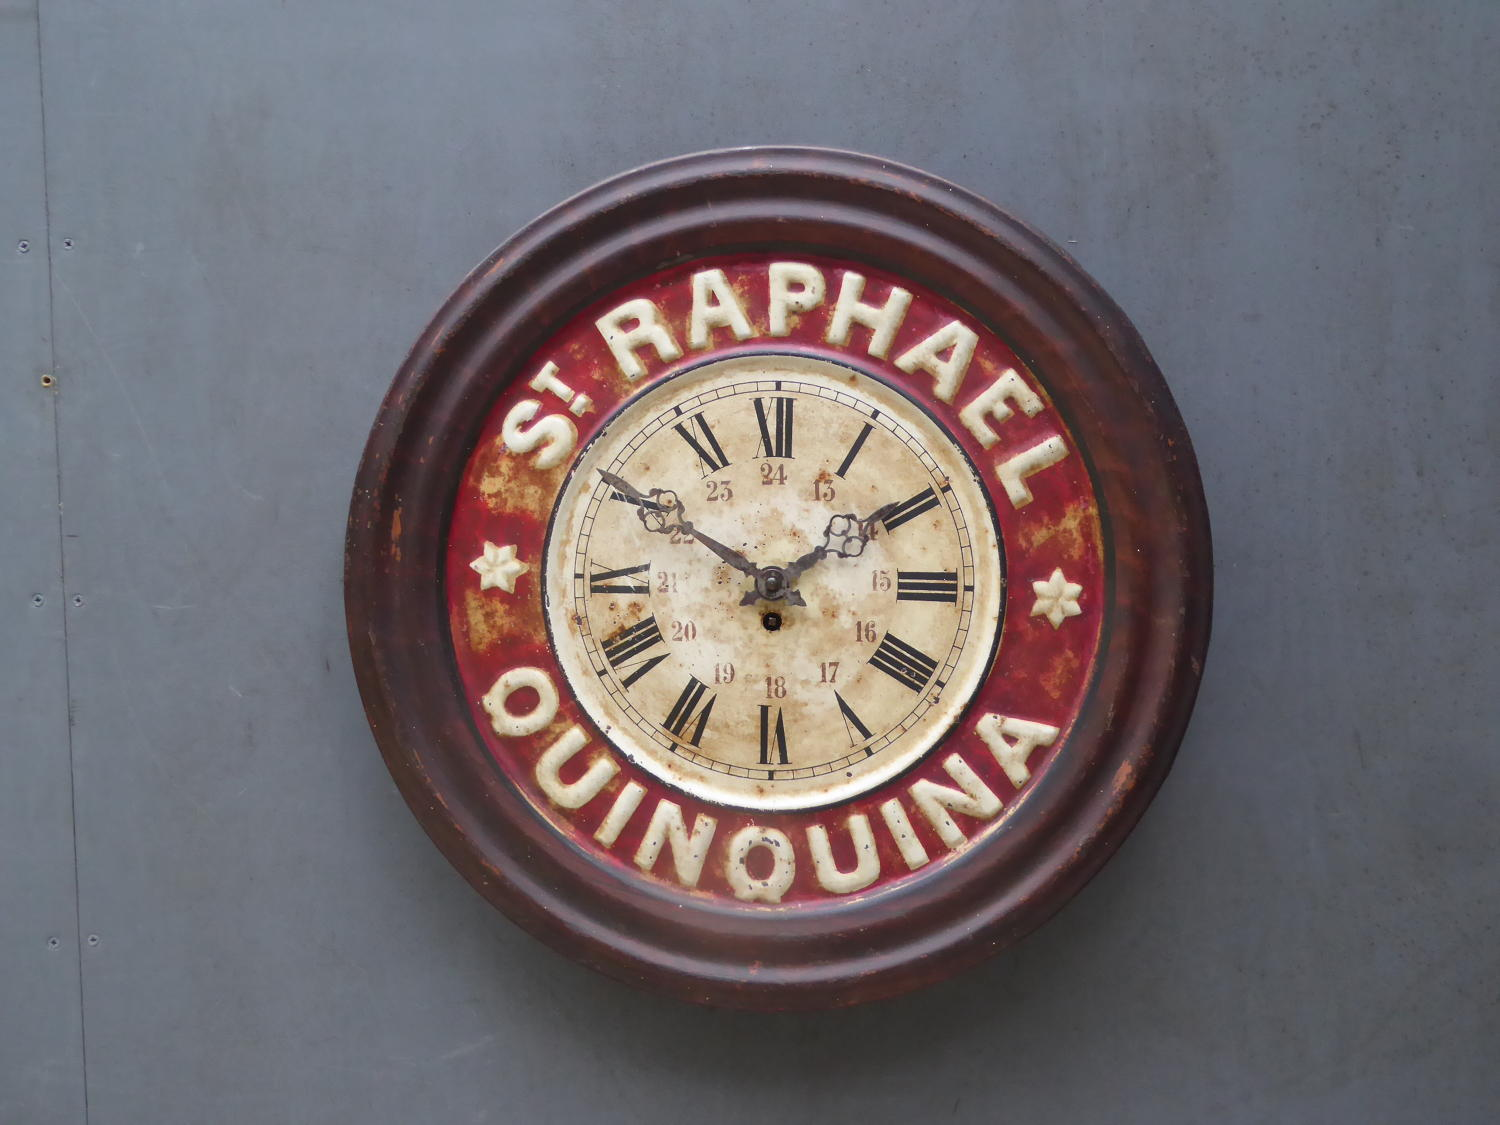 St Raphael Quinquina Advertising Clock